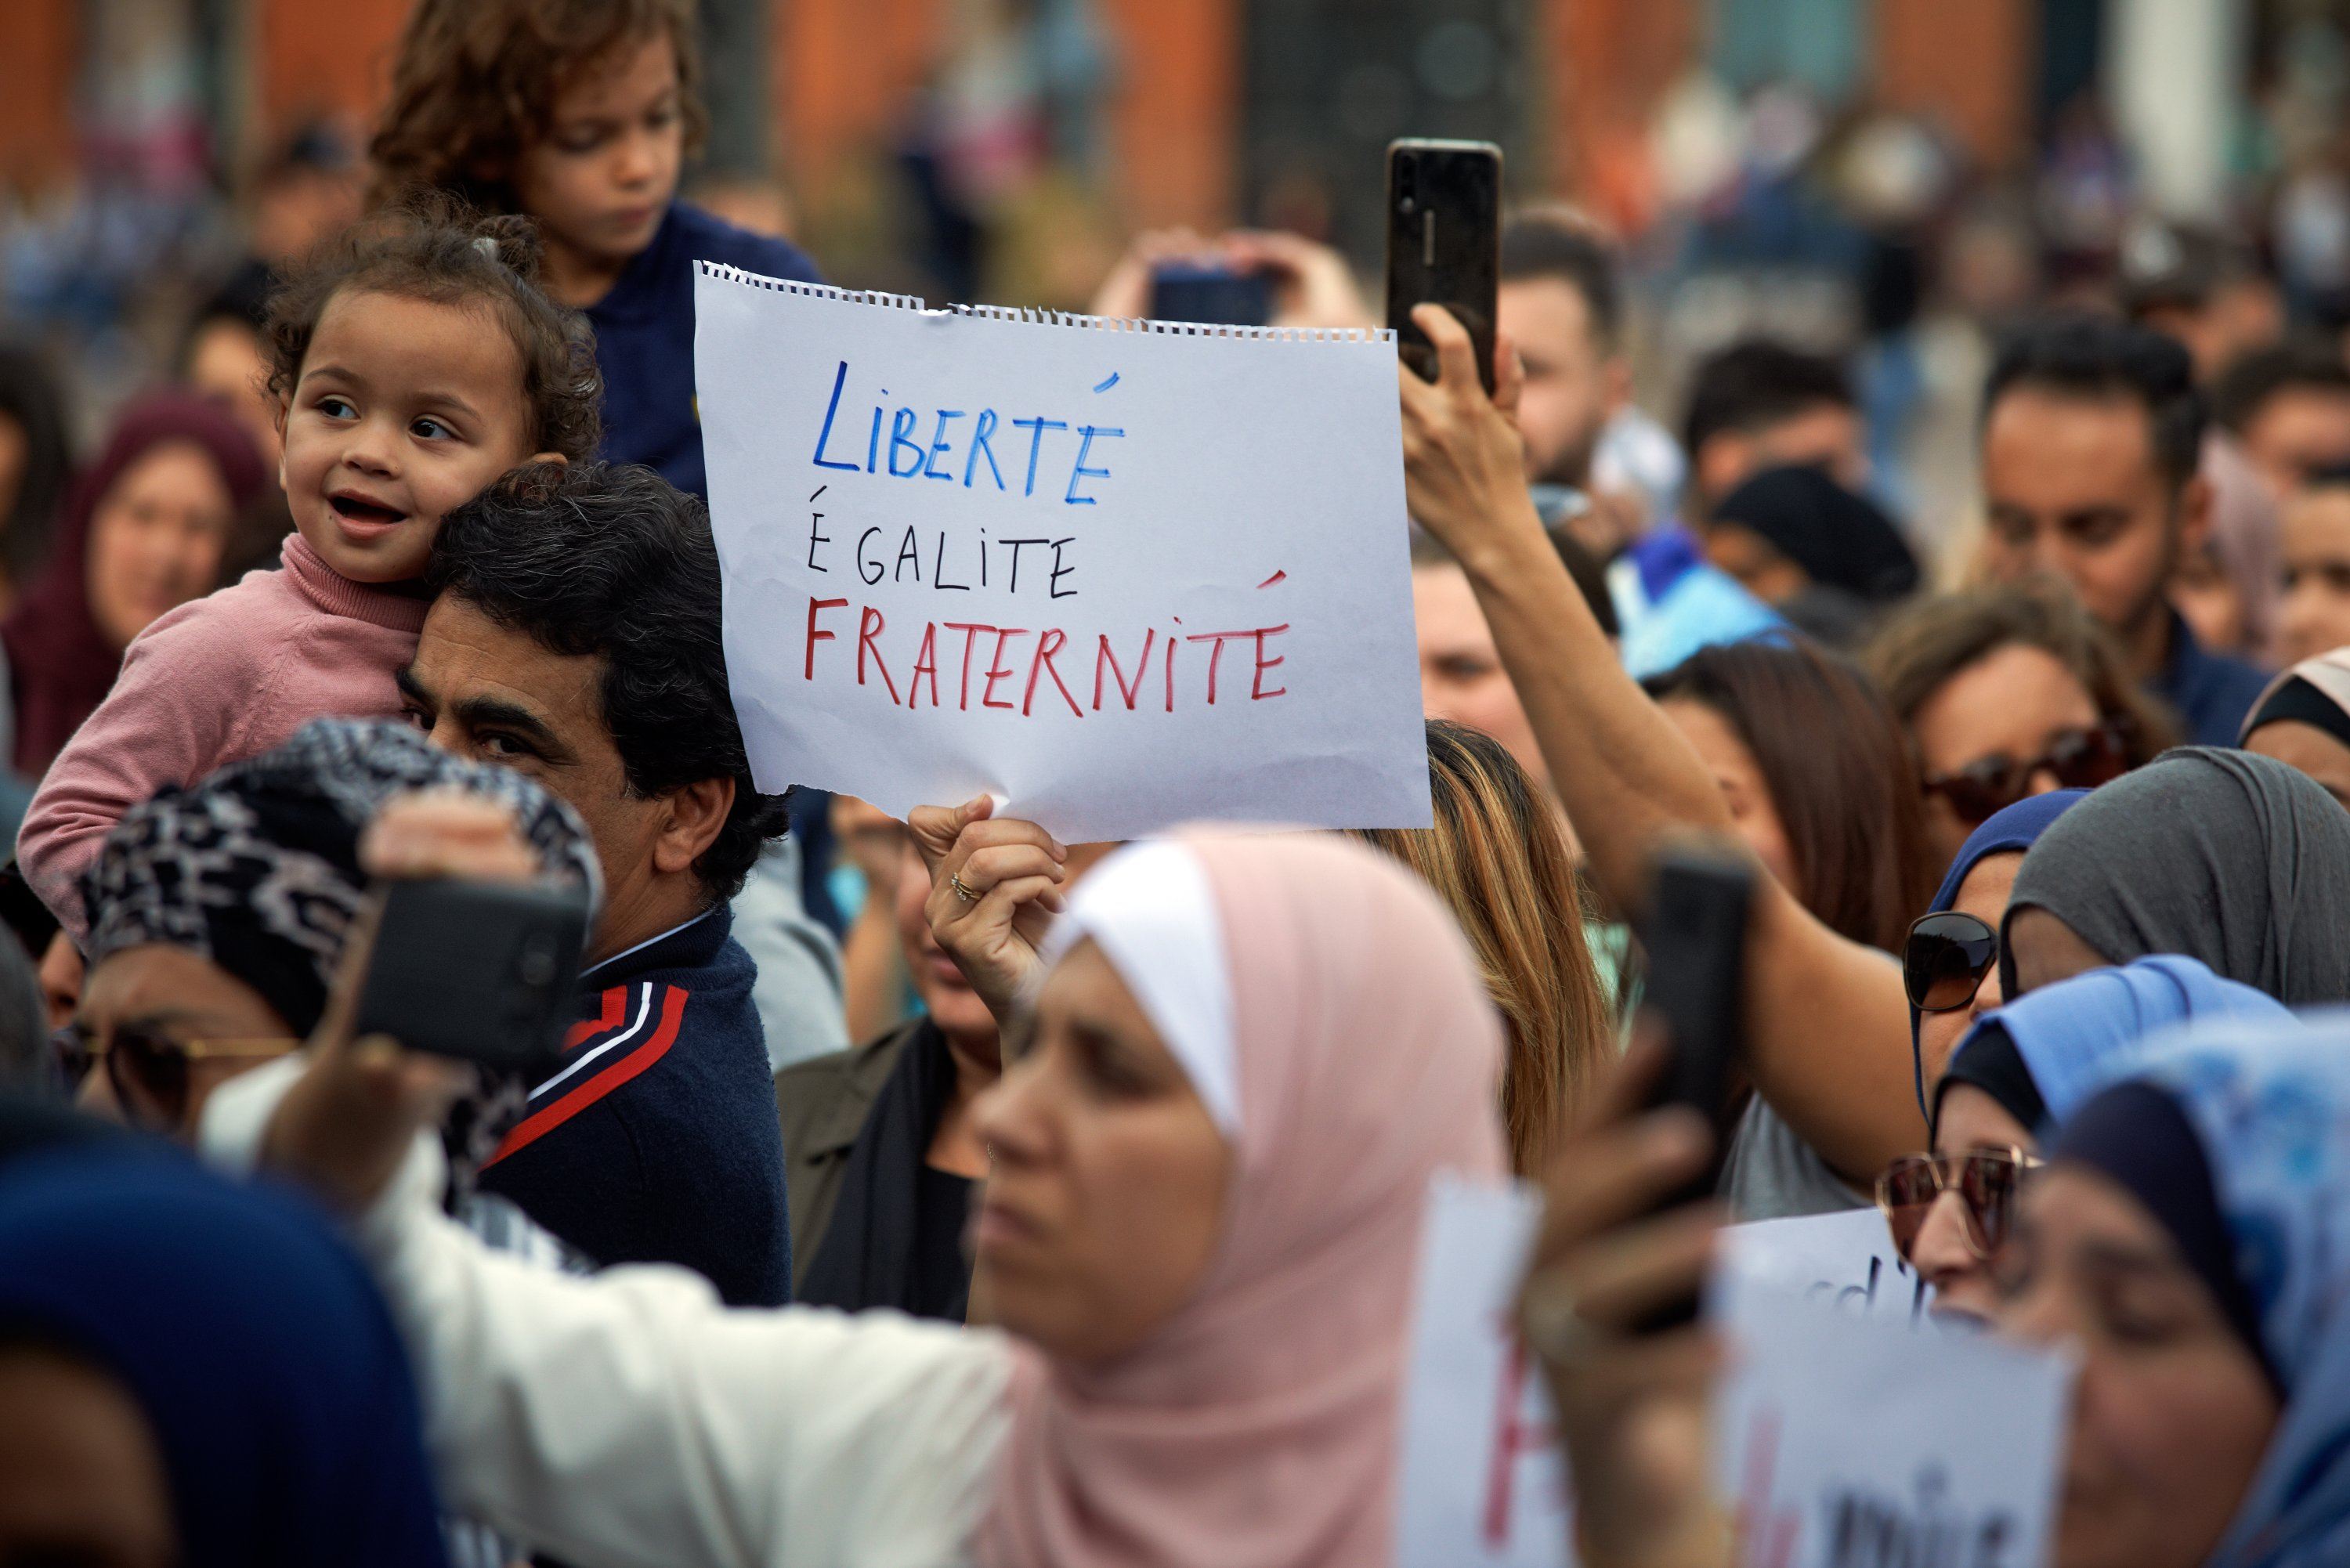 A protestor holds a placard reading 'Liberty, Equality, Fraternity' during a demonstration against Islamophobia on the main square of Toulouse, France, Oct. 27, 2019. (Photo by Getty Images)